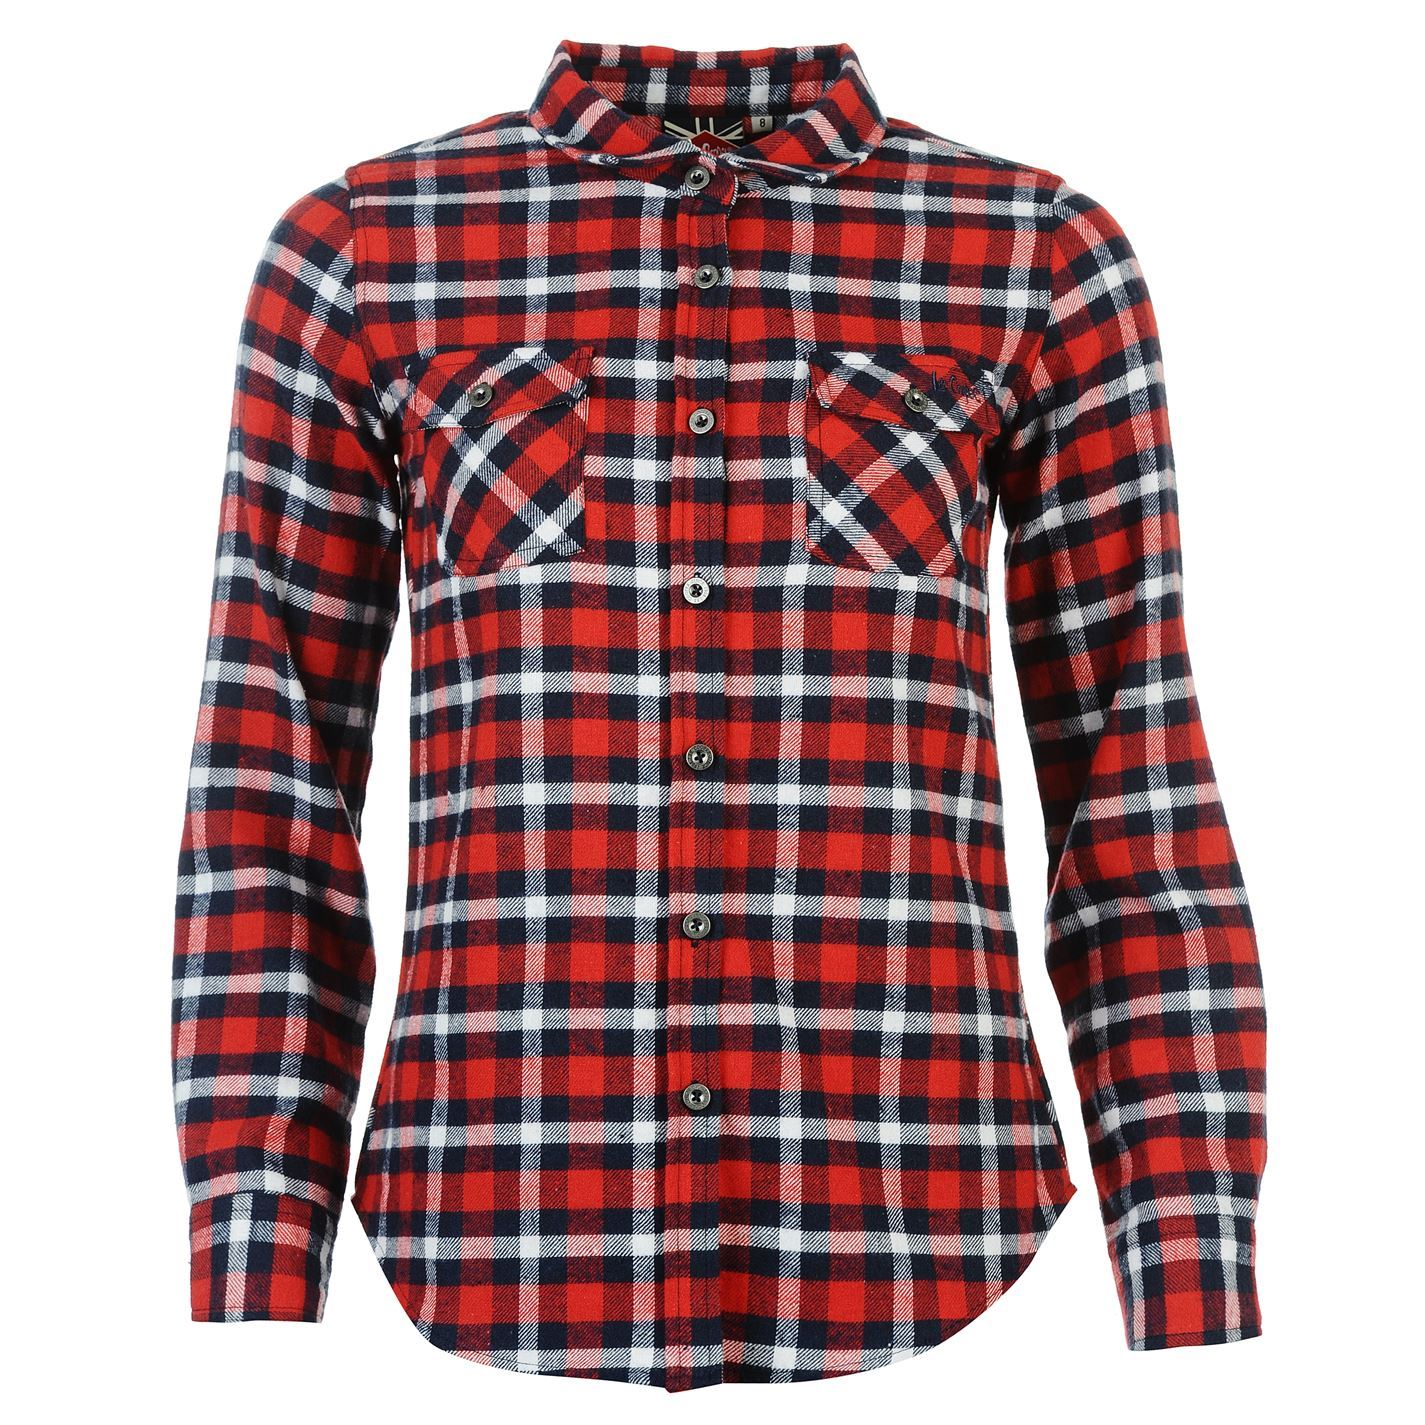 Lee cooper womens flannel ladies shirt long sleeve top for Best casual button down shirts